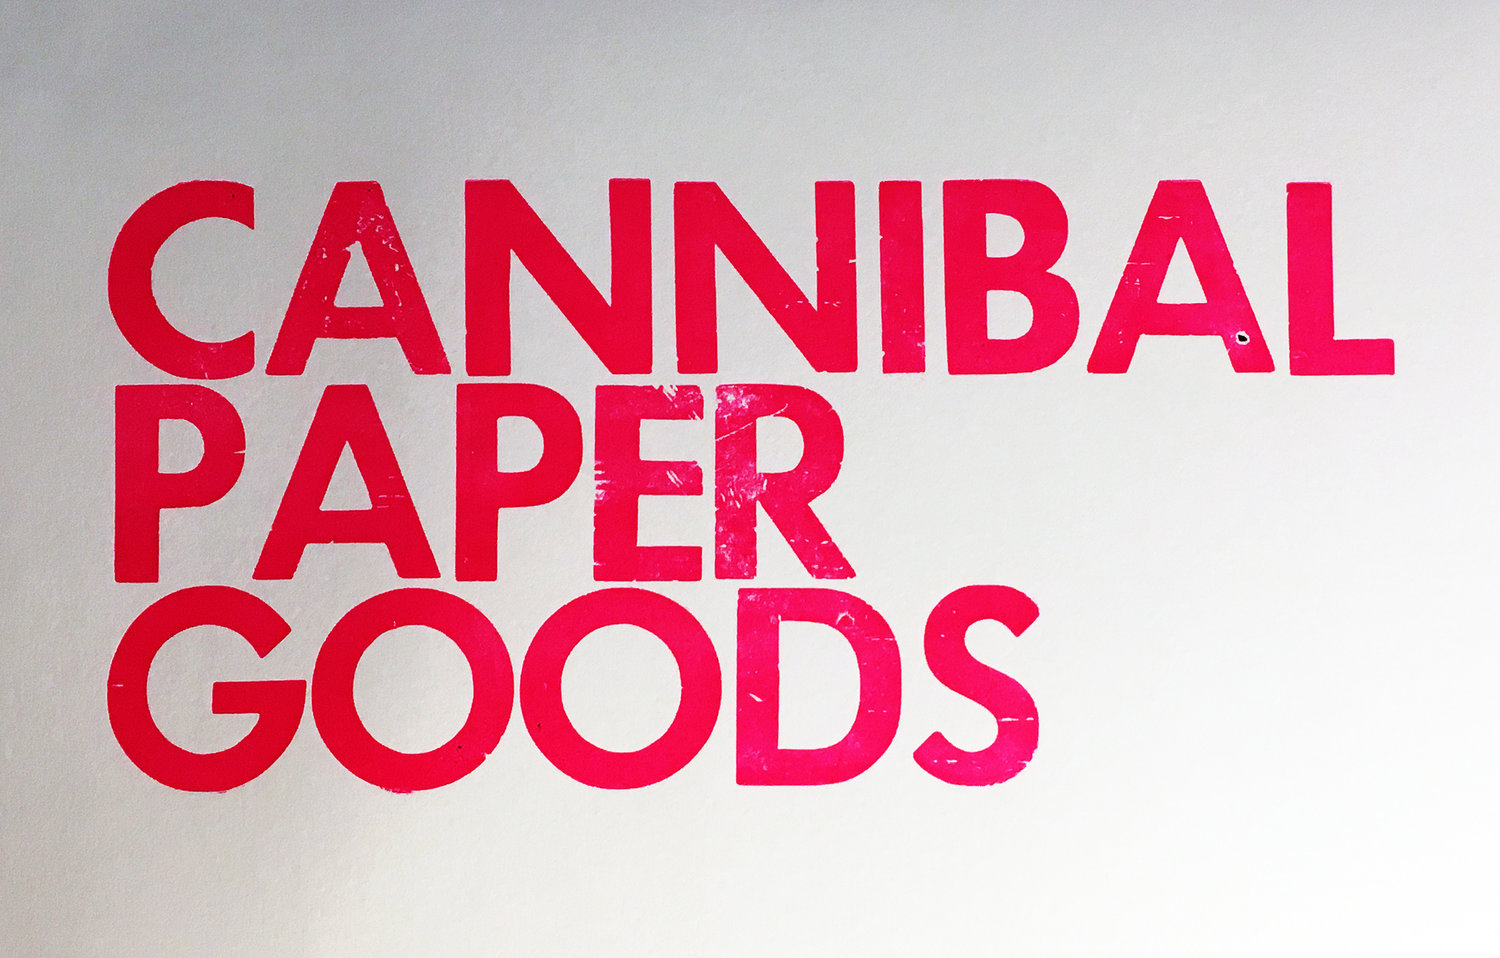 Cannibal Paper Goods